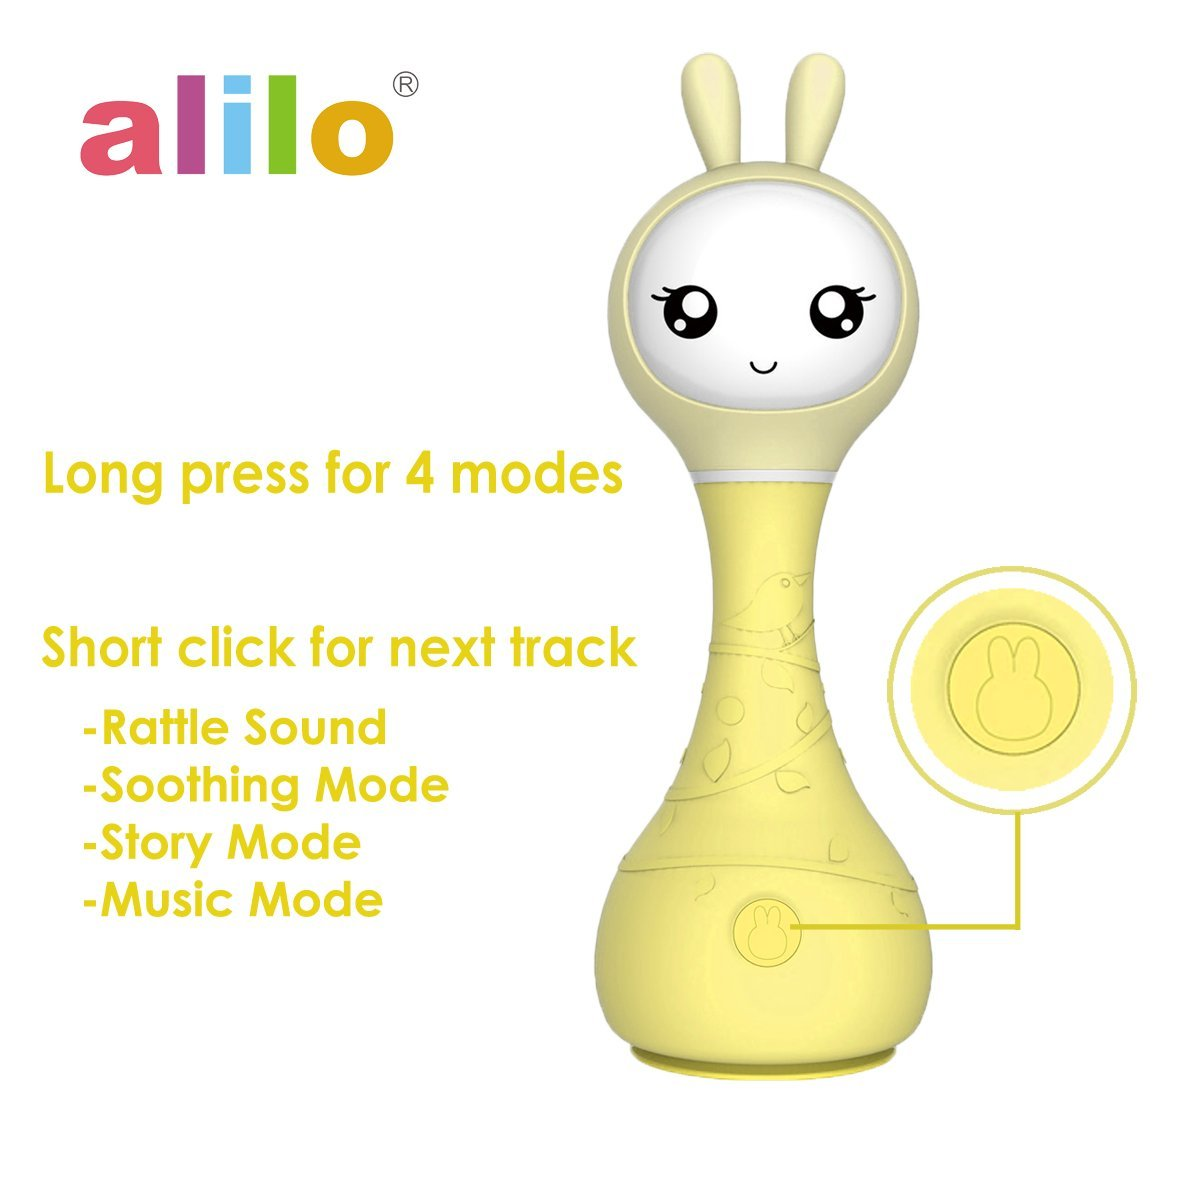 alilo Smarty Bunny Shake n Rattle Musical Toy for Kid//Baby//Toddler with Color Identifier Yellow R1Yellow01